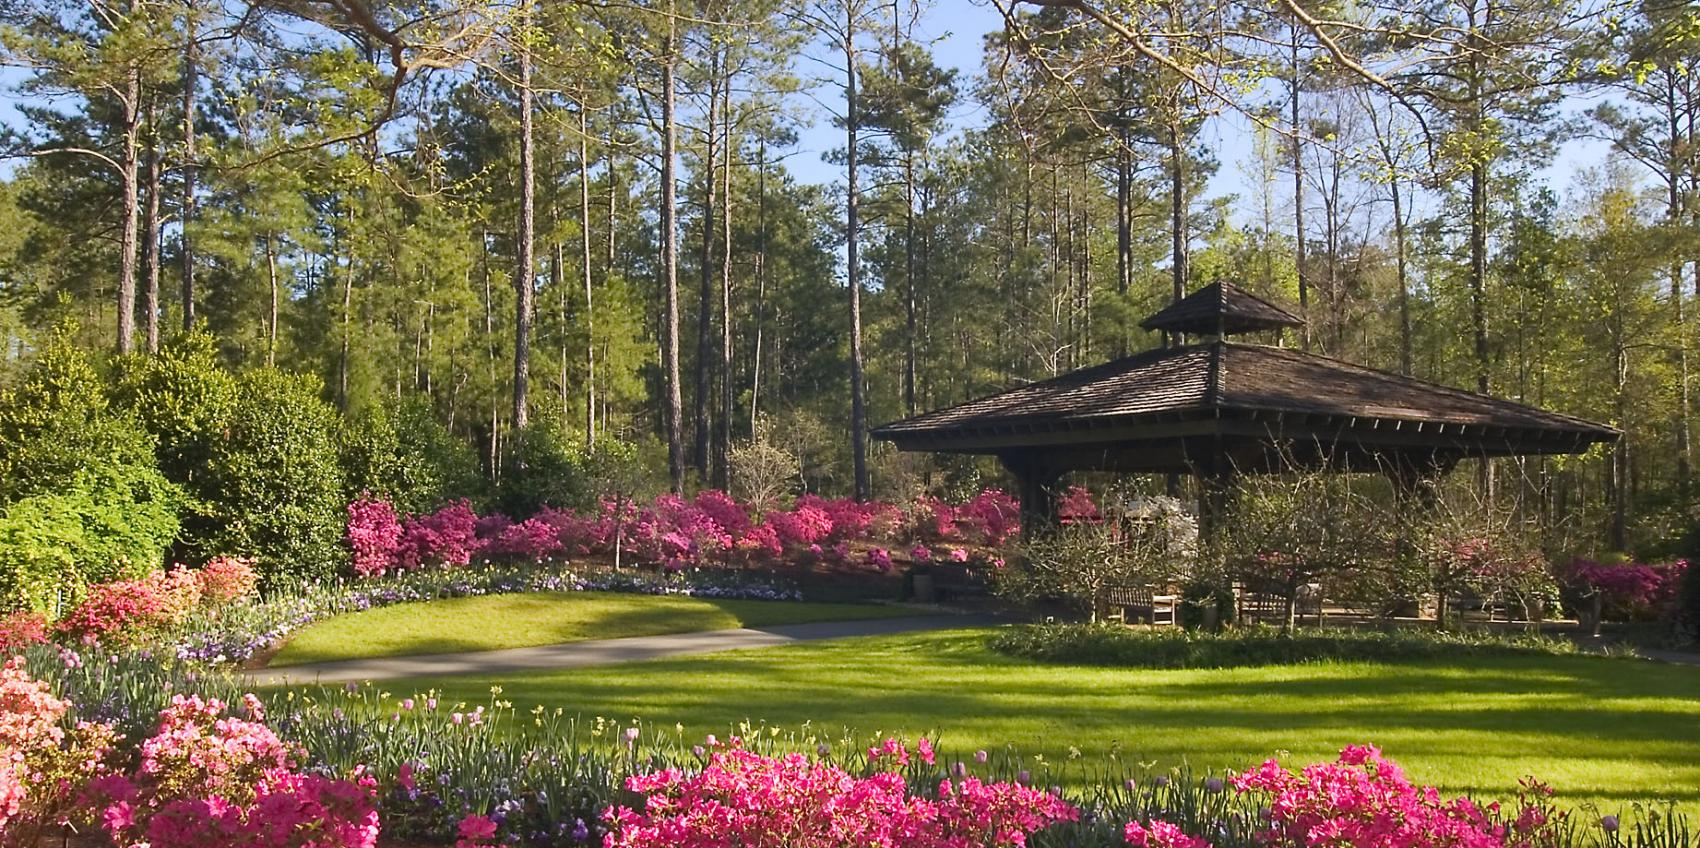 Callaway Gardens Is An Award Winning, 2,500 Acre Gardens And Resort Nestled  In The Southernmost Foothills Of The Appalachian Mountains, In Pine  Mountain, ...